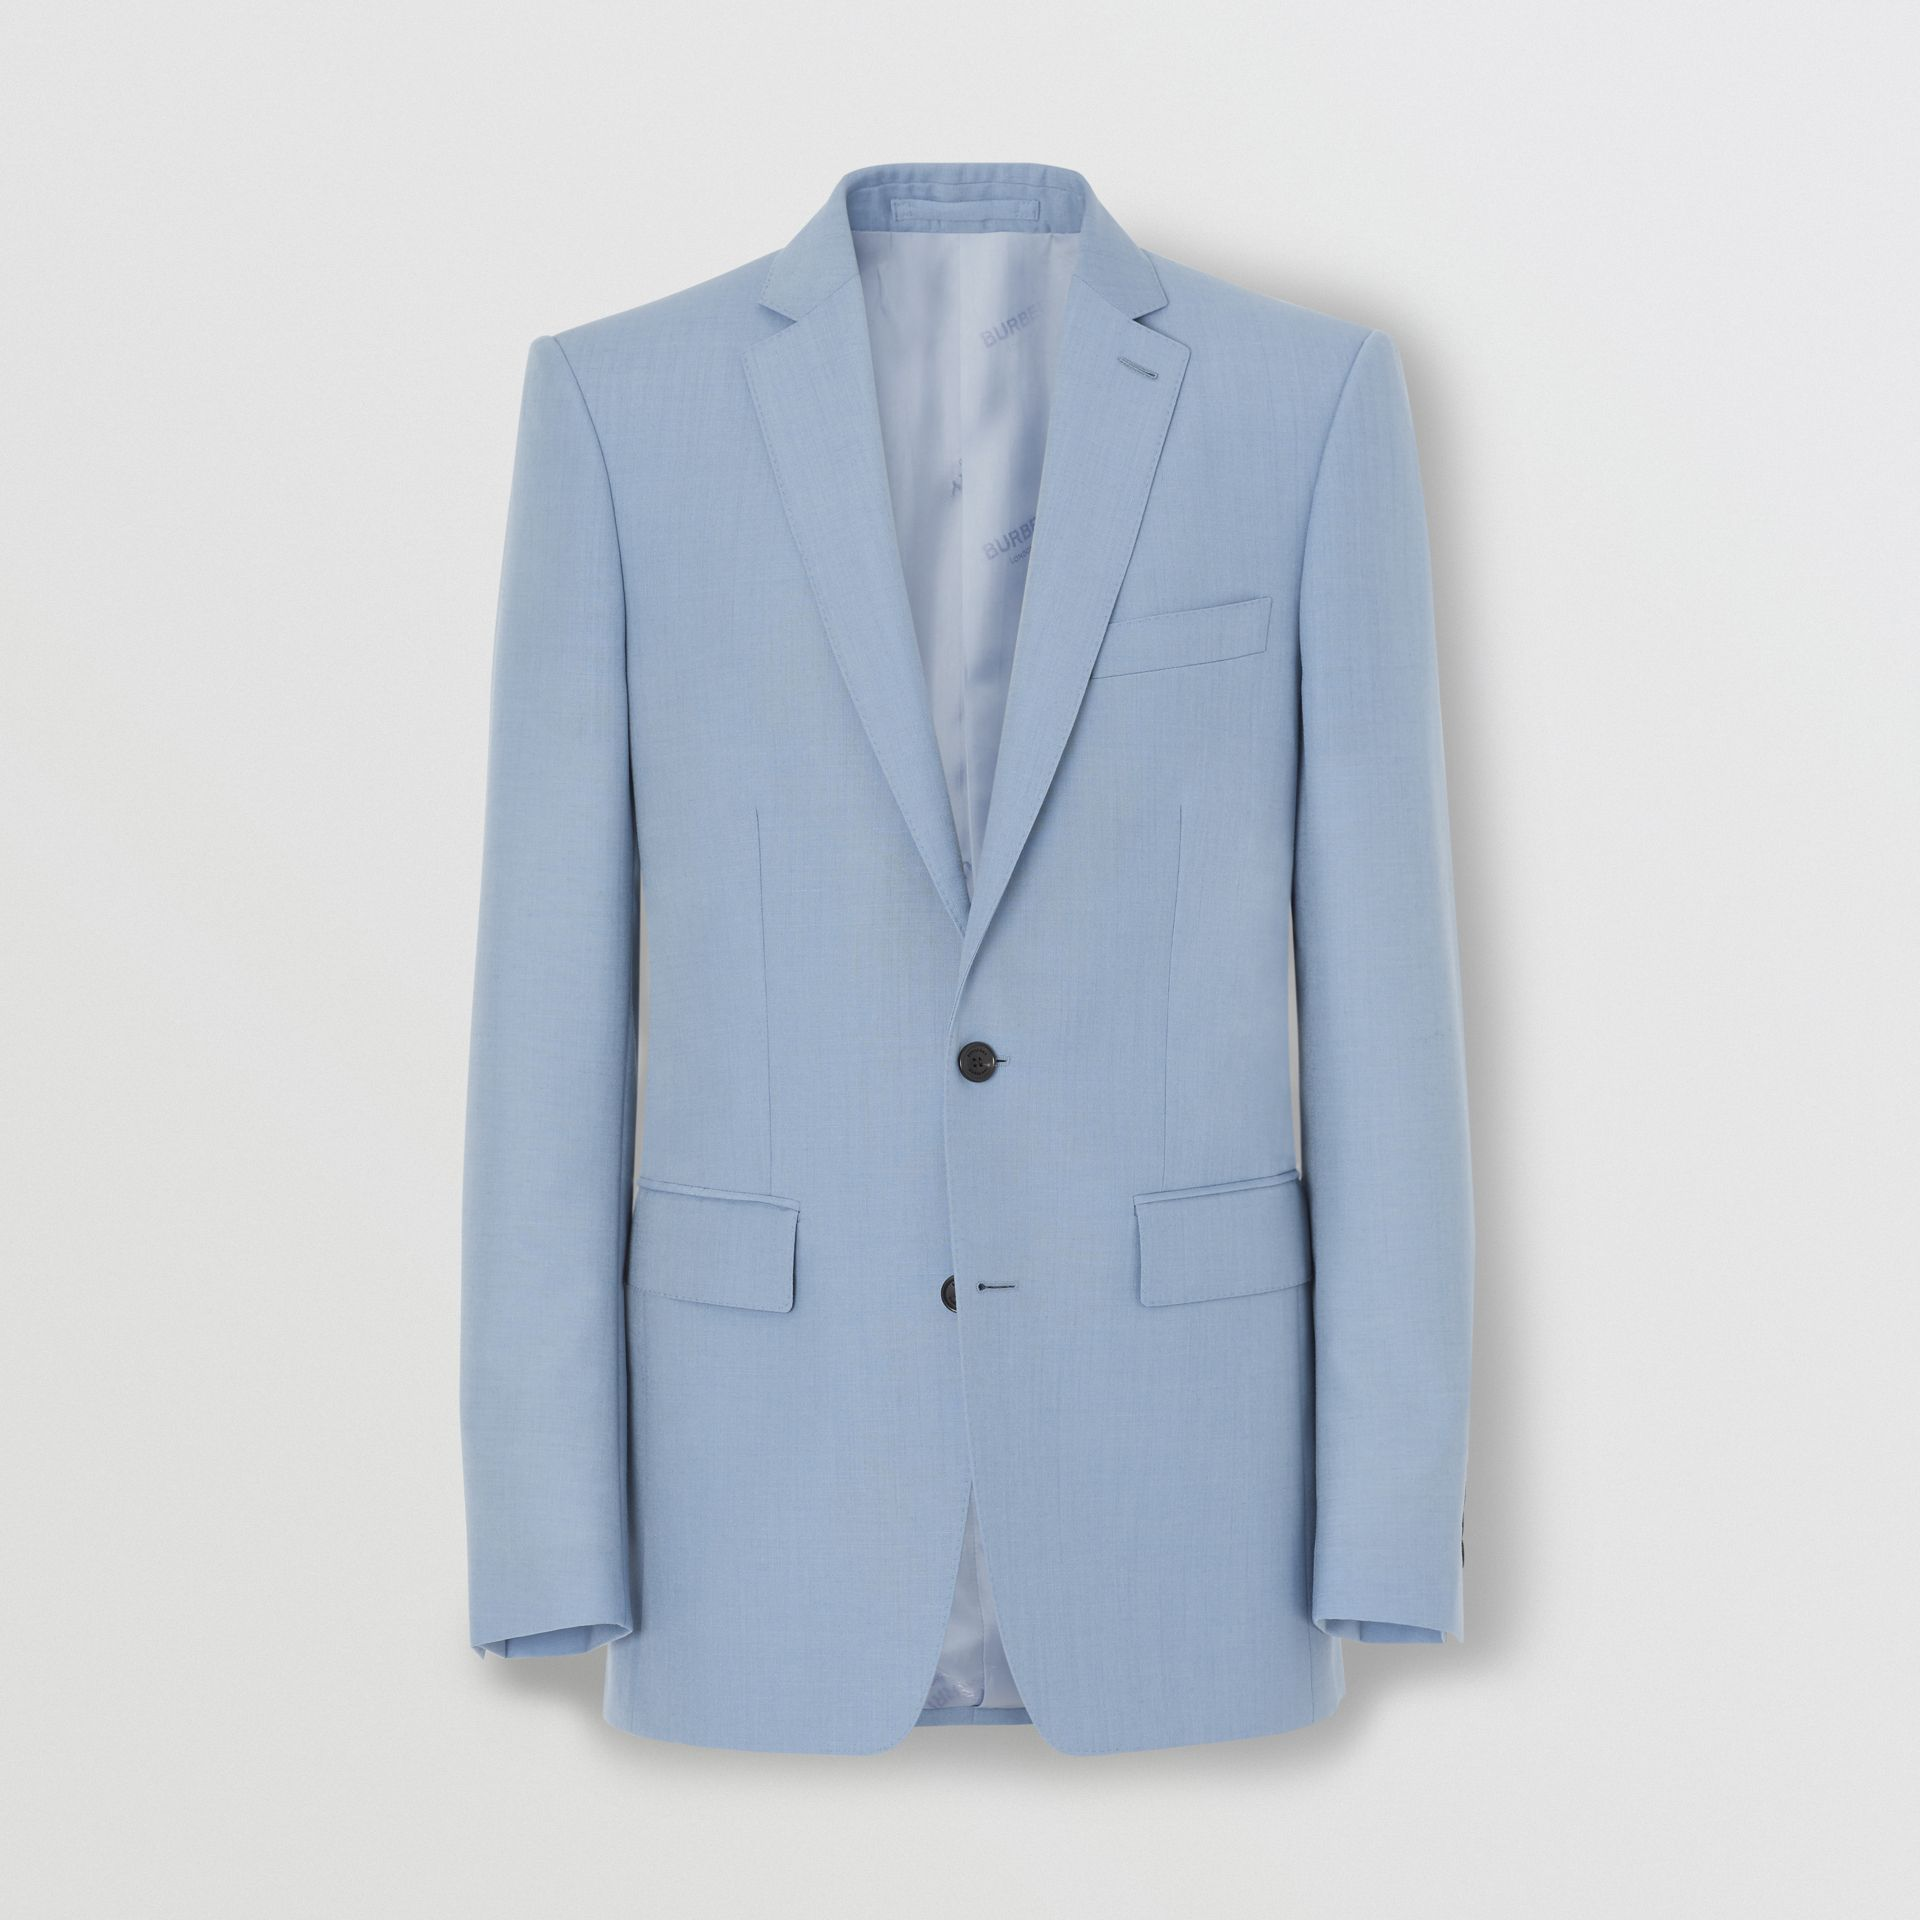 Classic Fit Wool Mohair Tailored Jacket in Pale Blue - Men | Burberry United States - gallery image 3